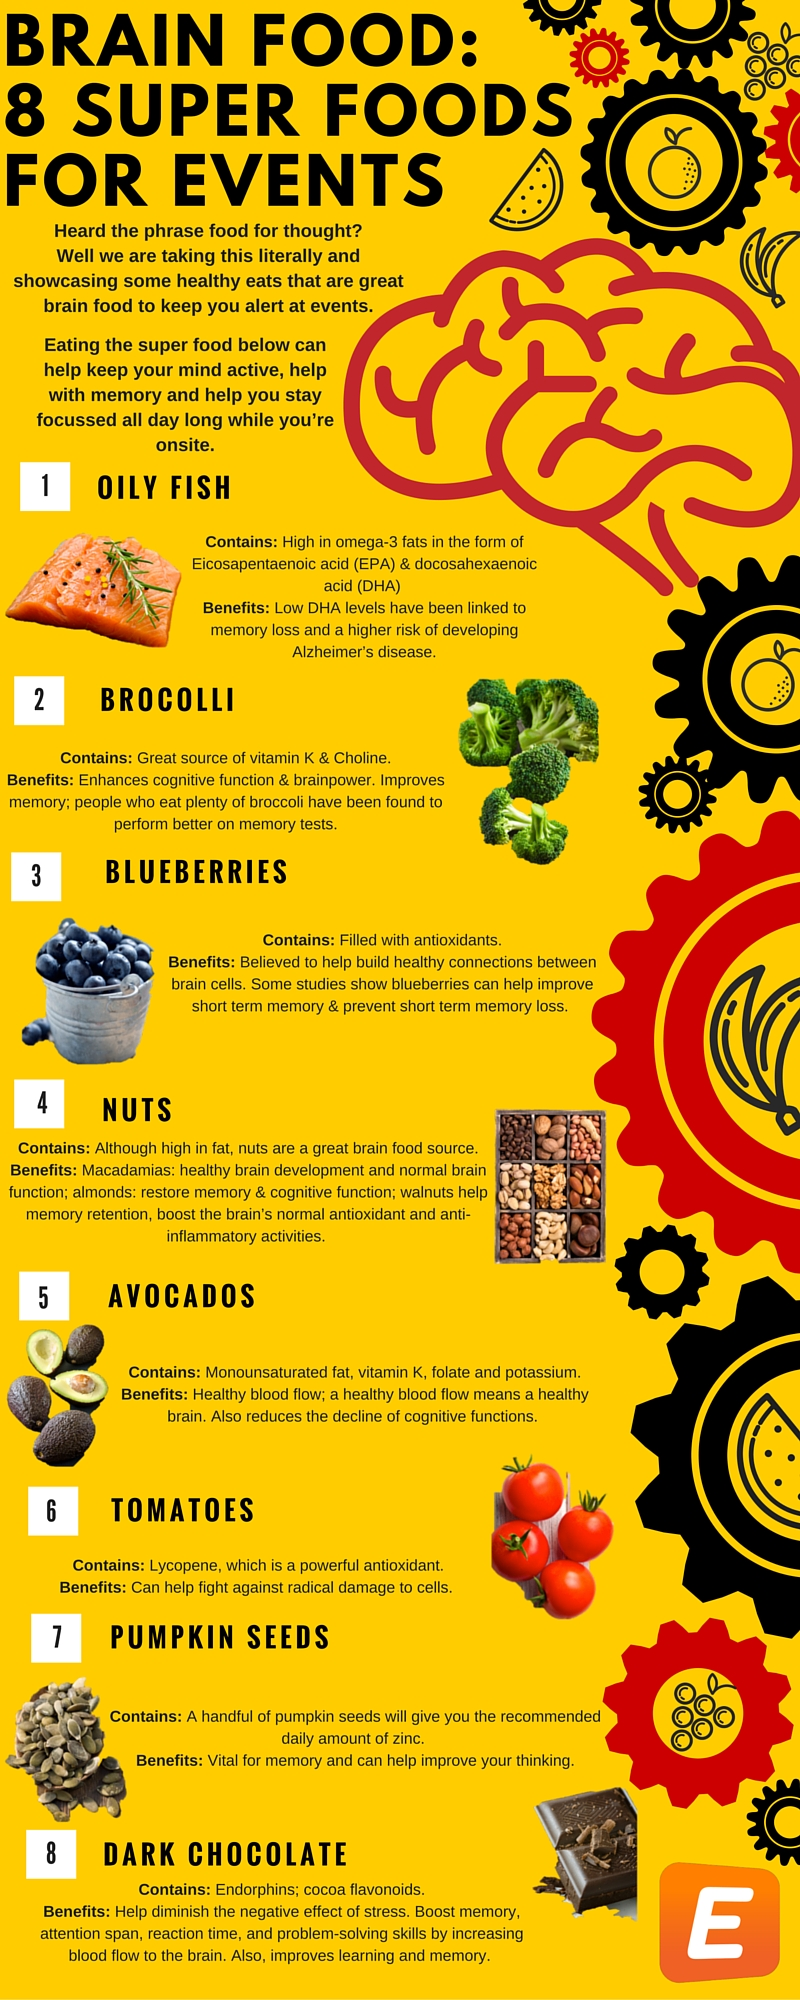 infographic Brain Food- 8 Super Foods for Events